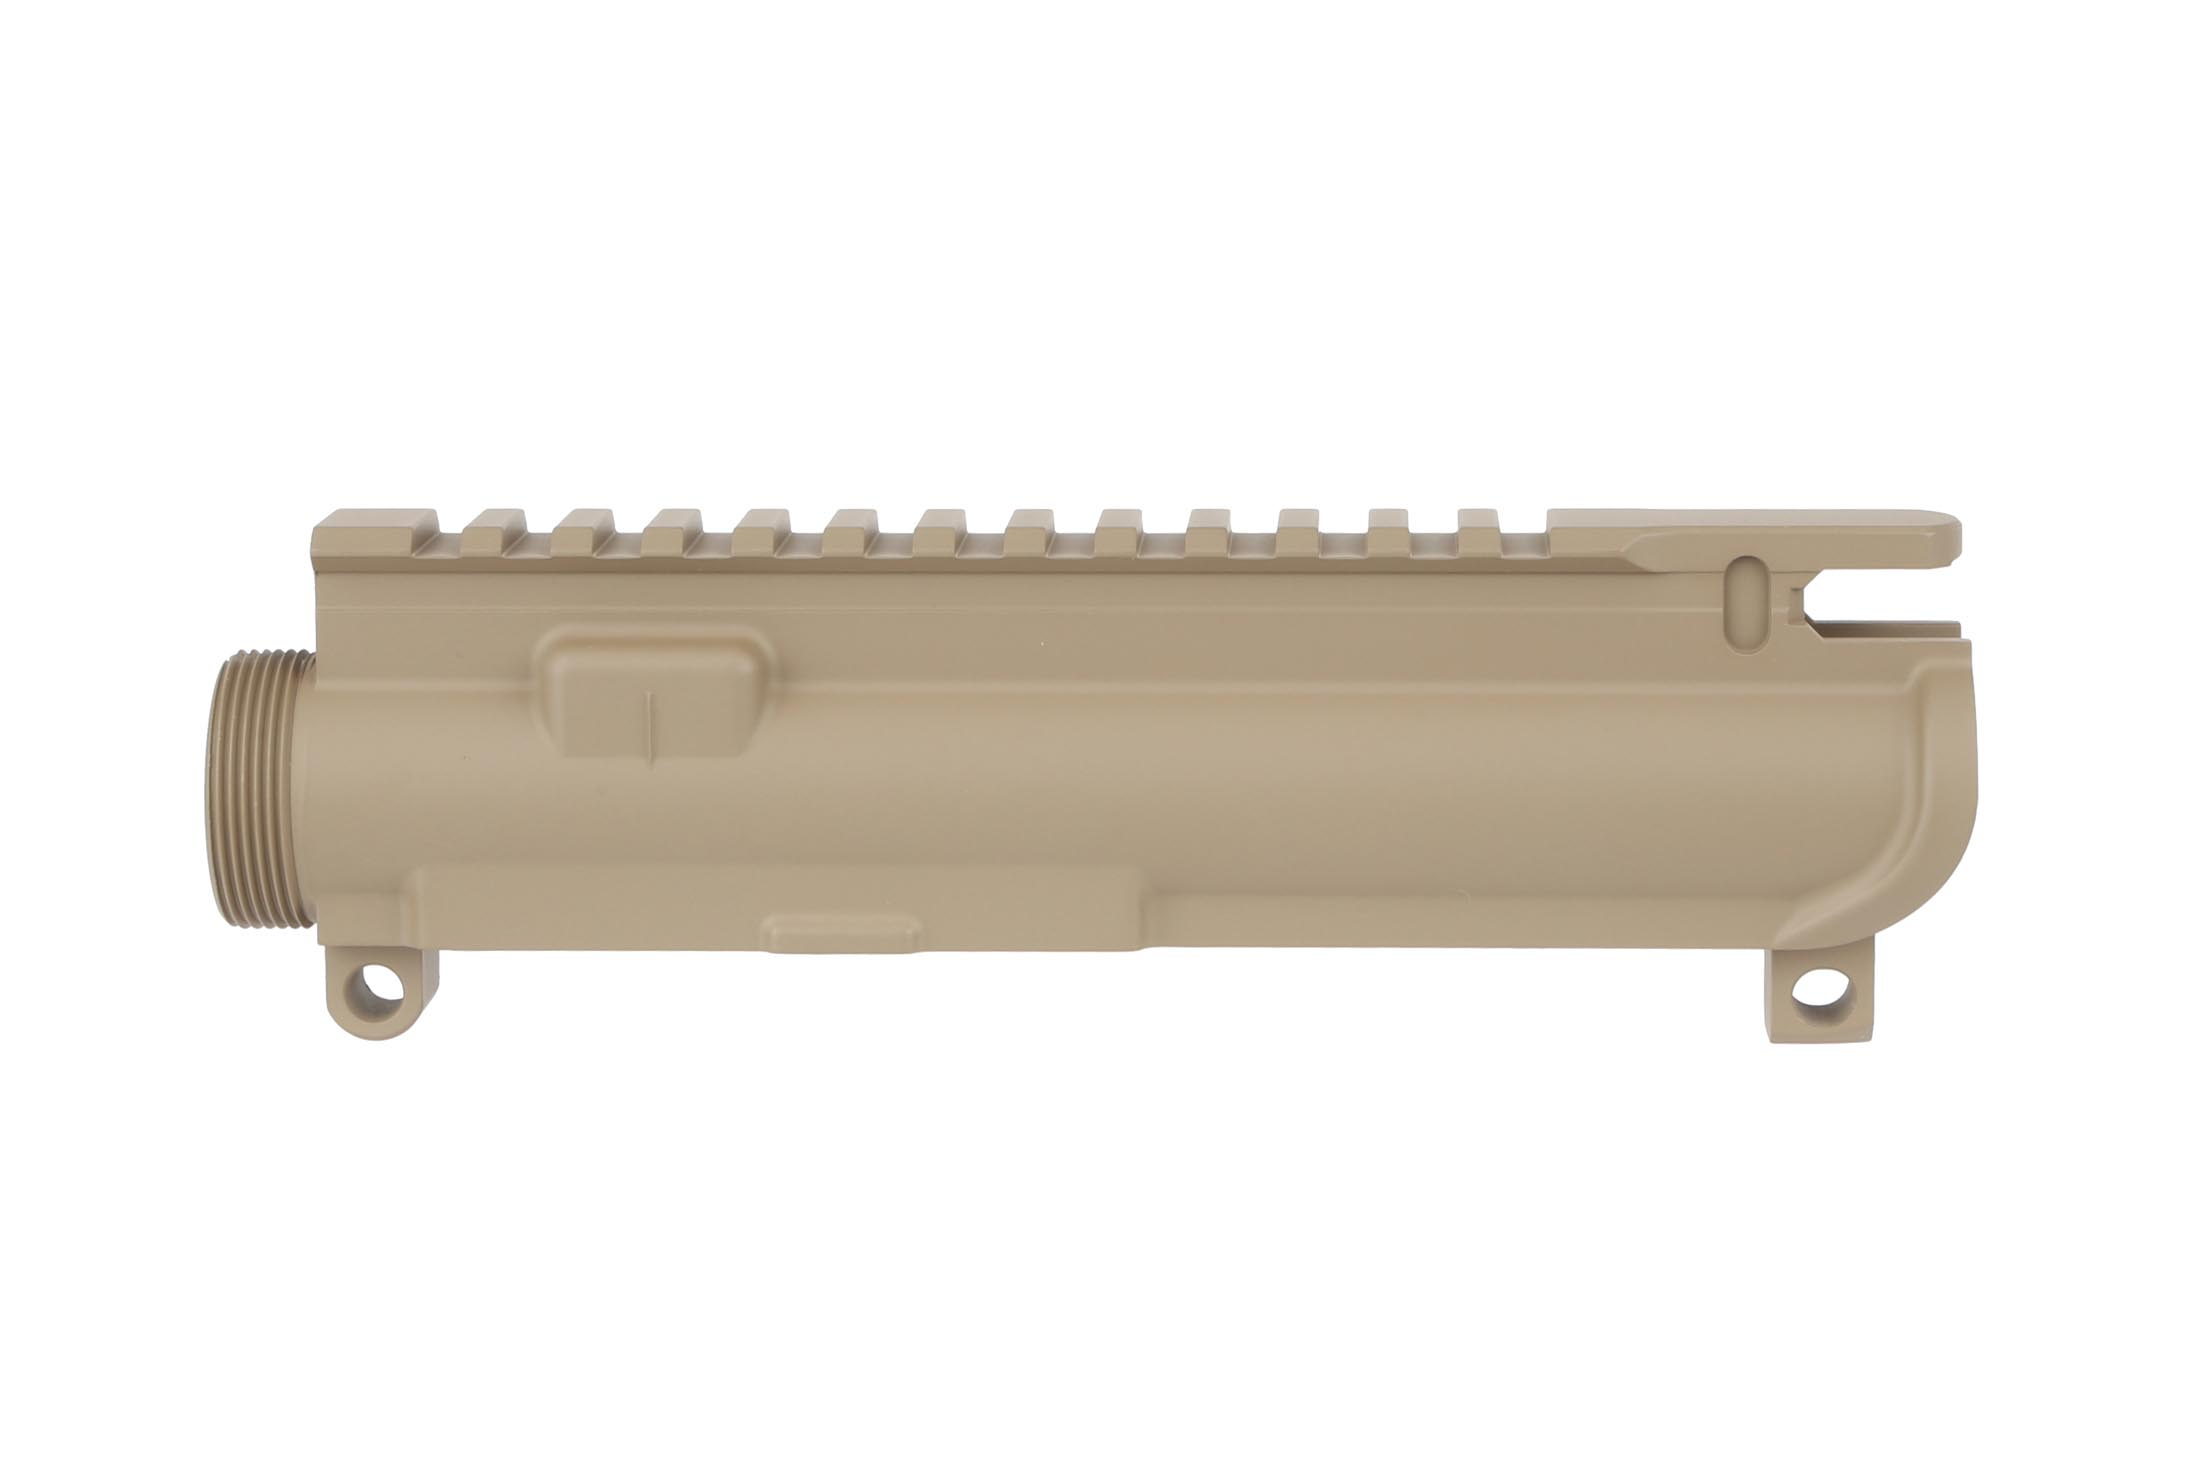 Aero Precision Stripped AR-15 Upper Receiver - FDE Cerakote